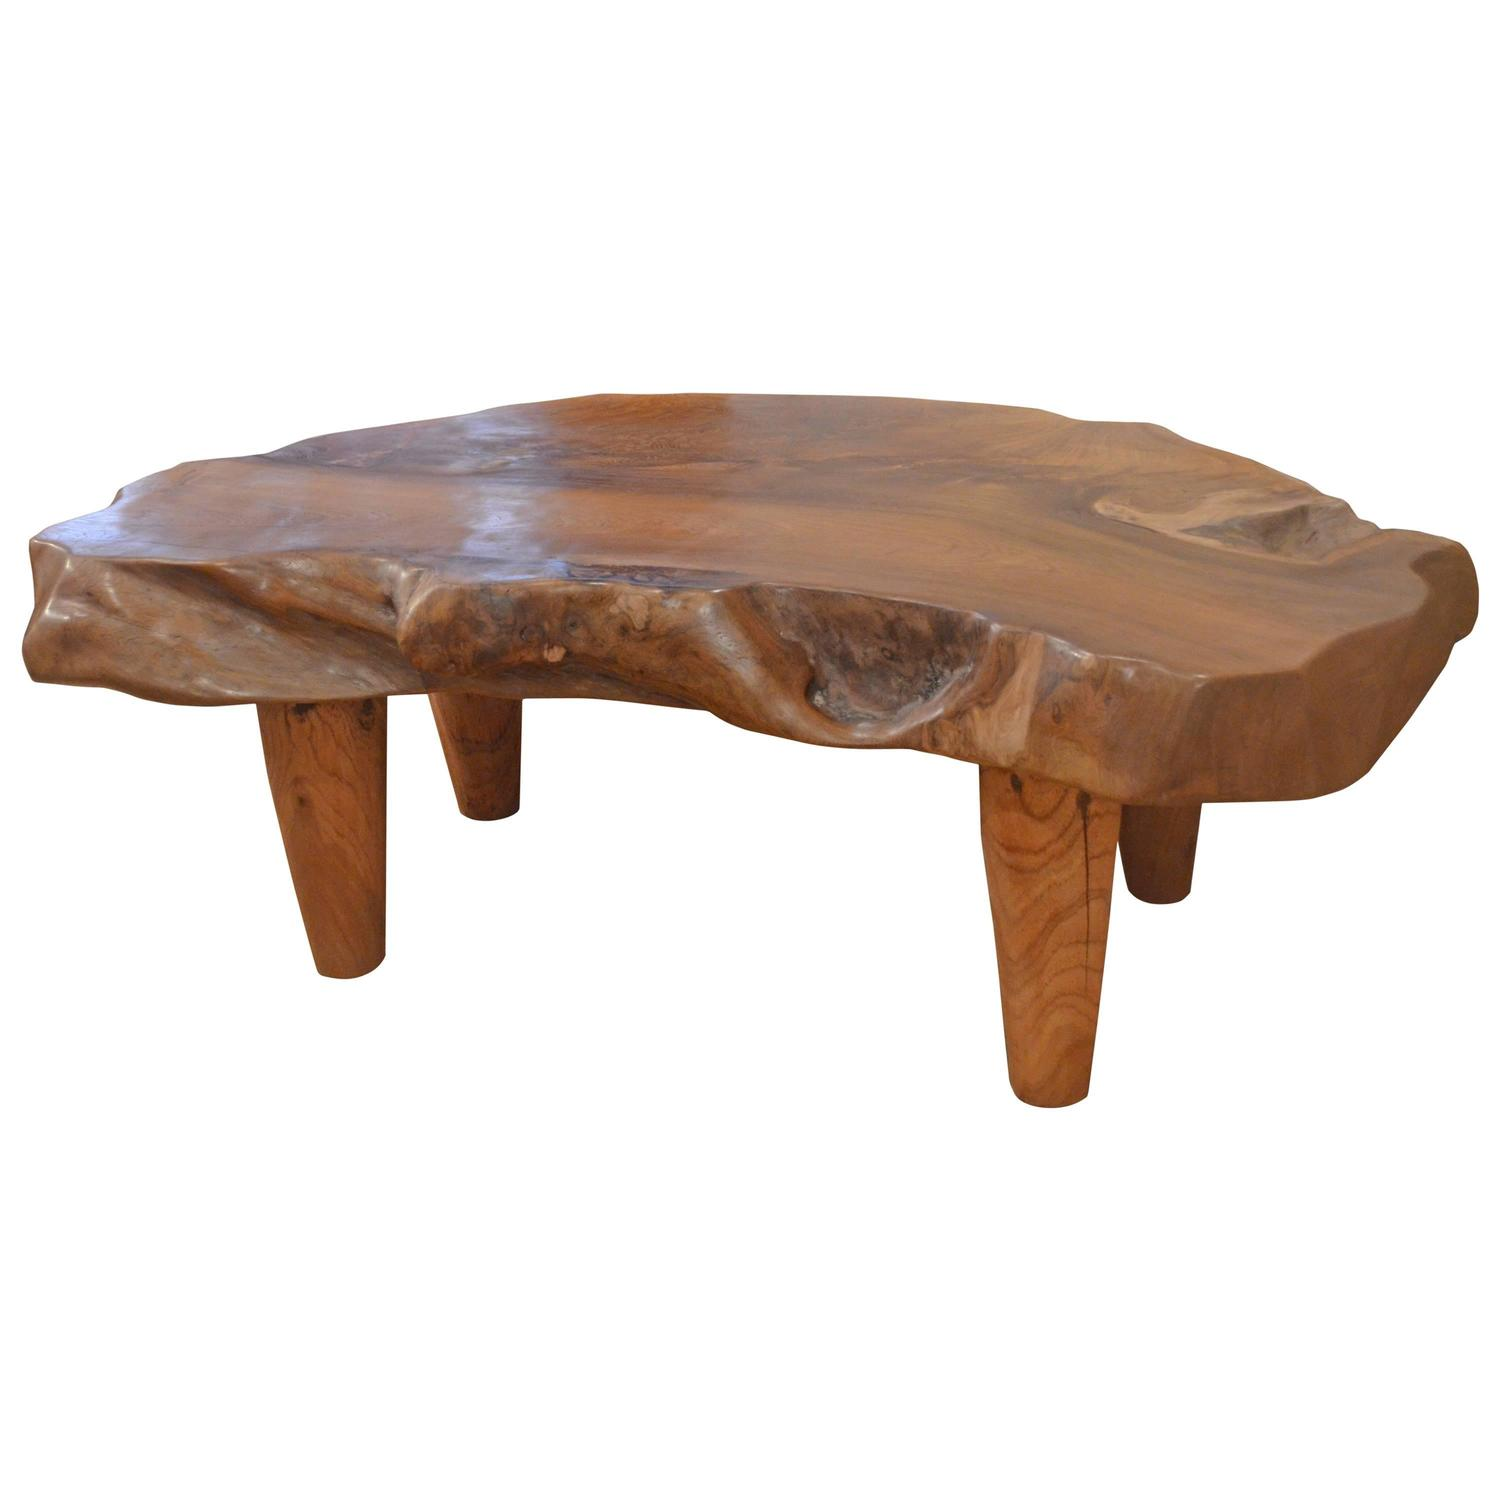 Natural Teak Wood Coffee Table For Sale At 1stdibs